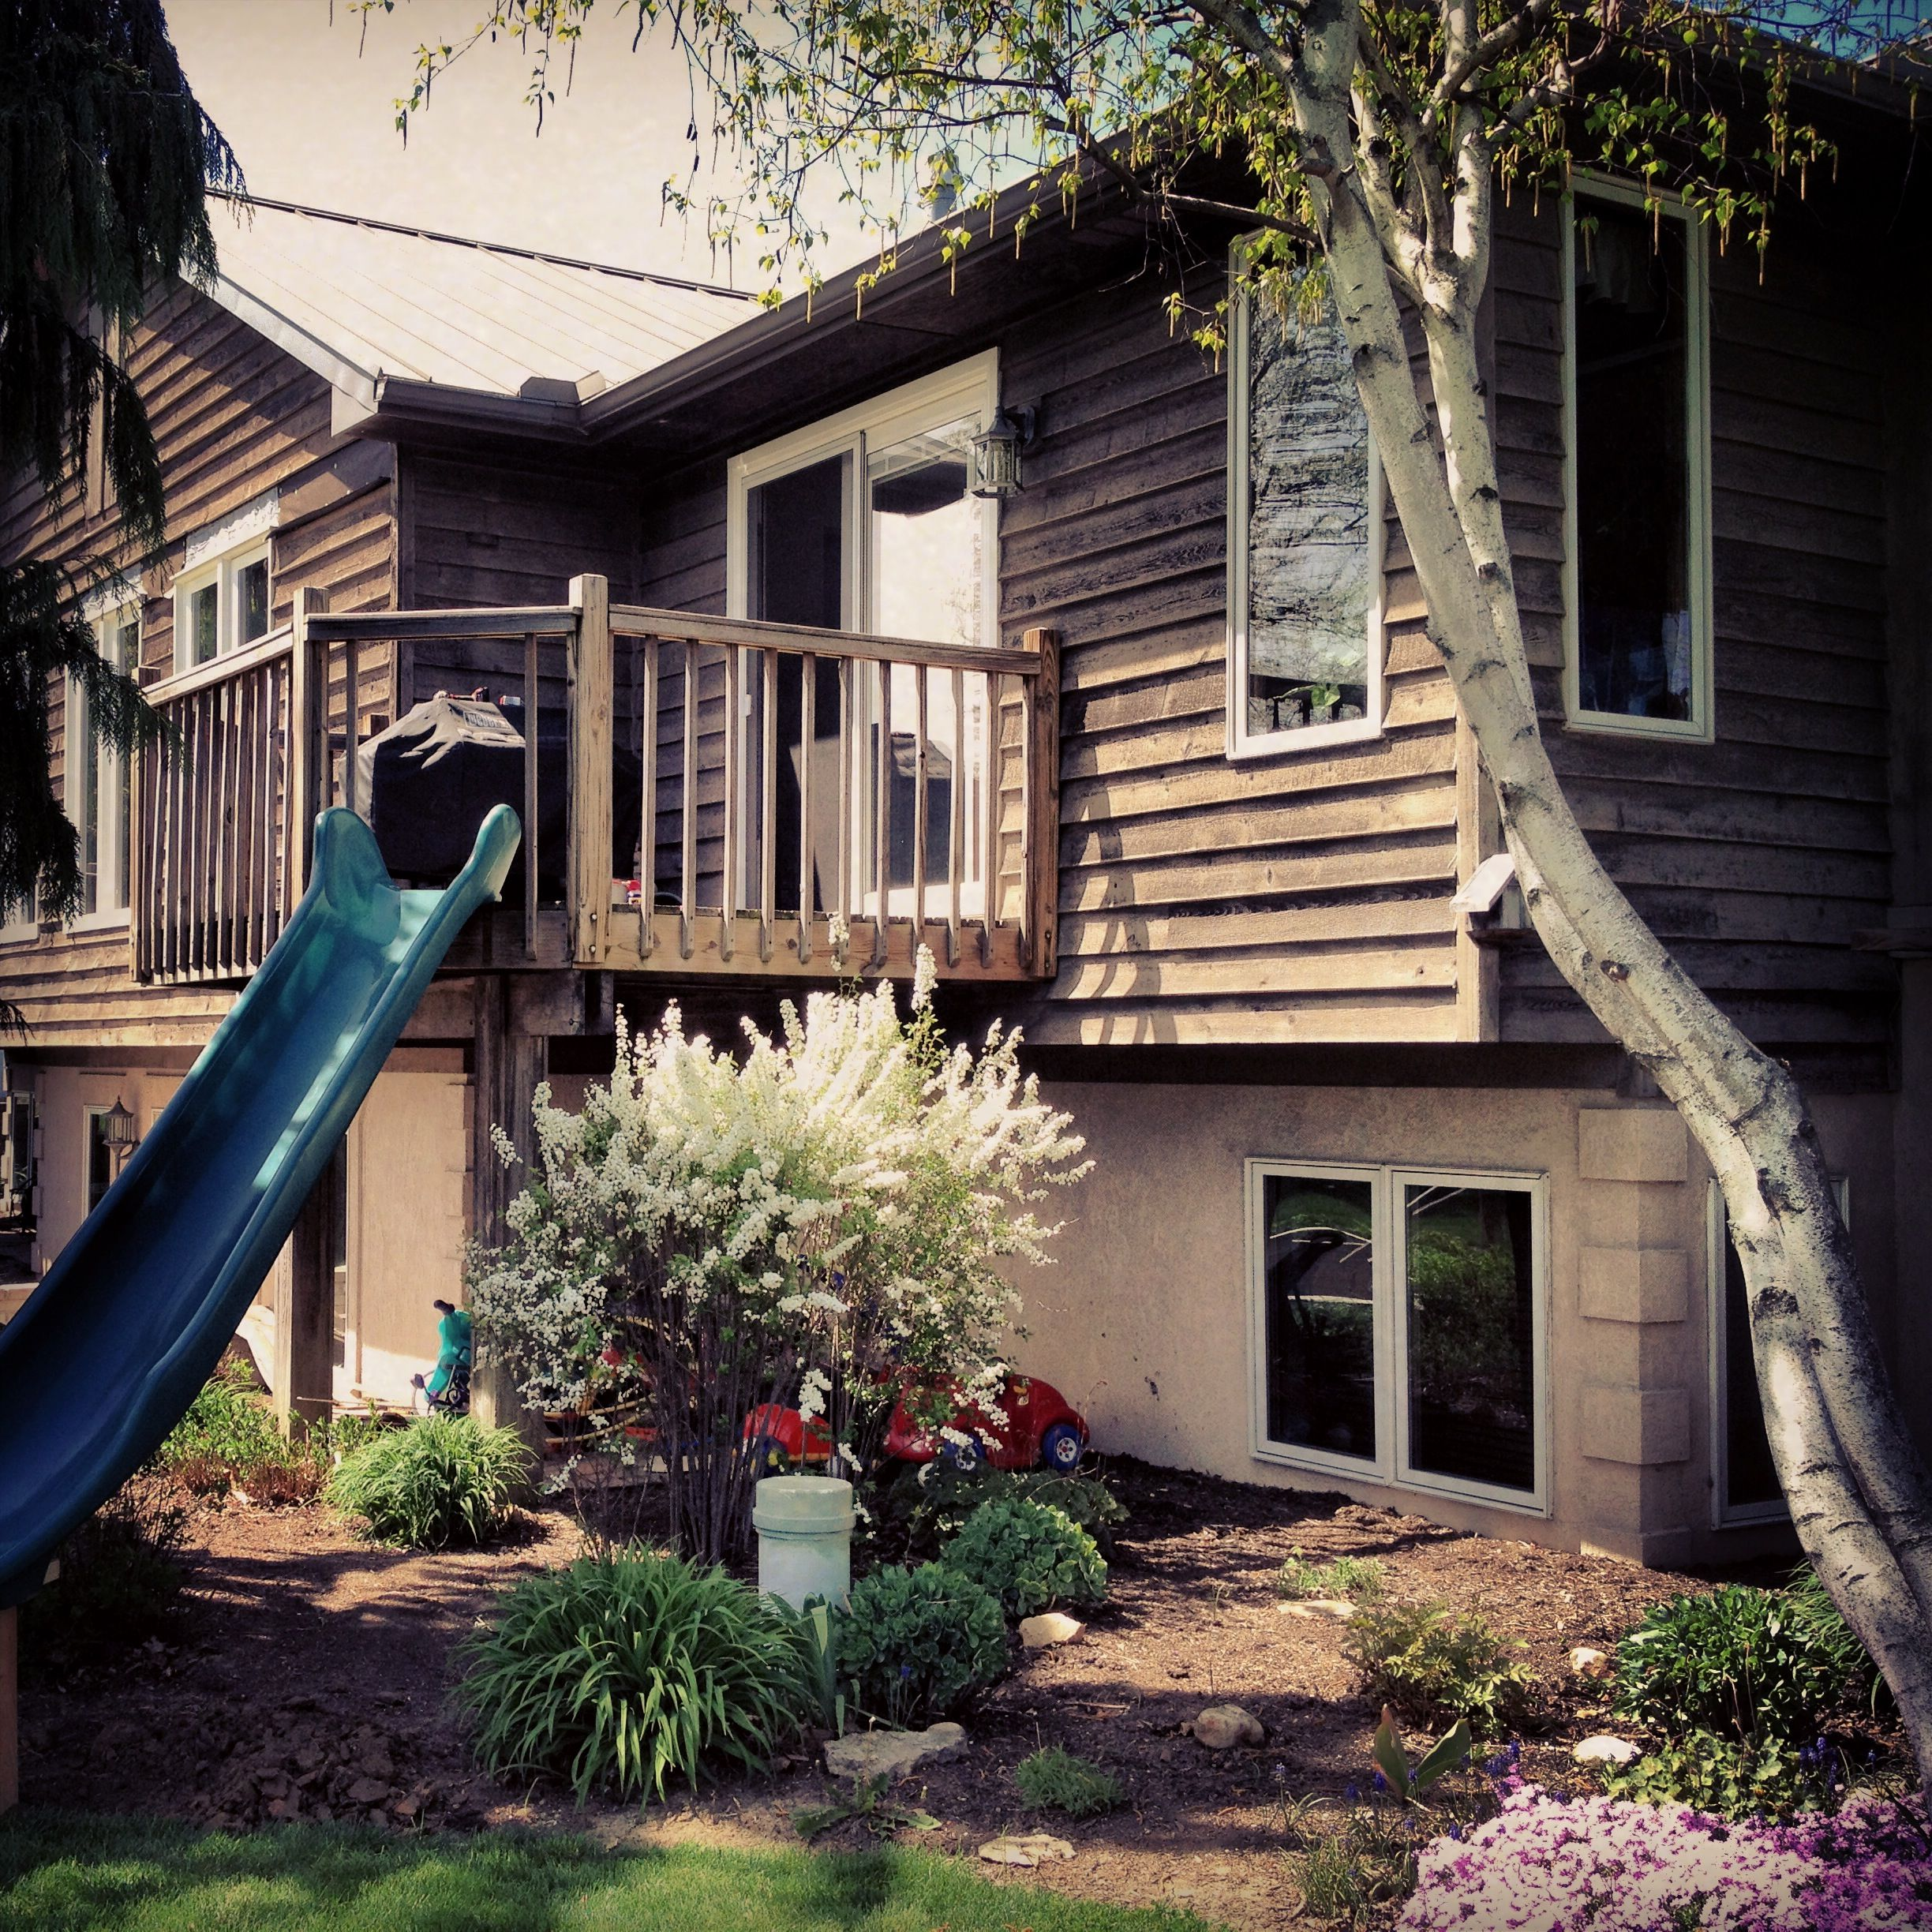 Pin By Erin Morrison On For The Home Second Story Deck Deck Stairs Garden Stairs